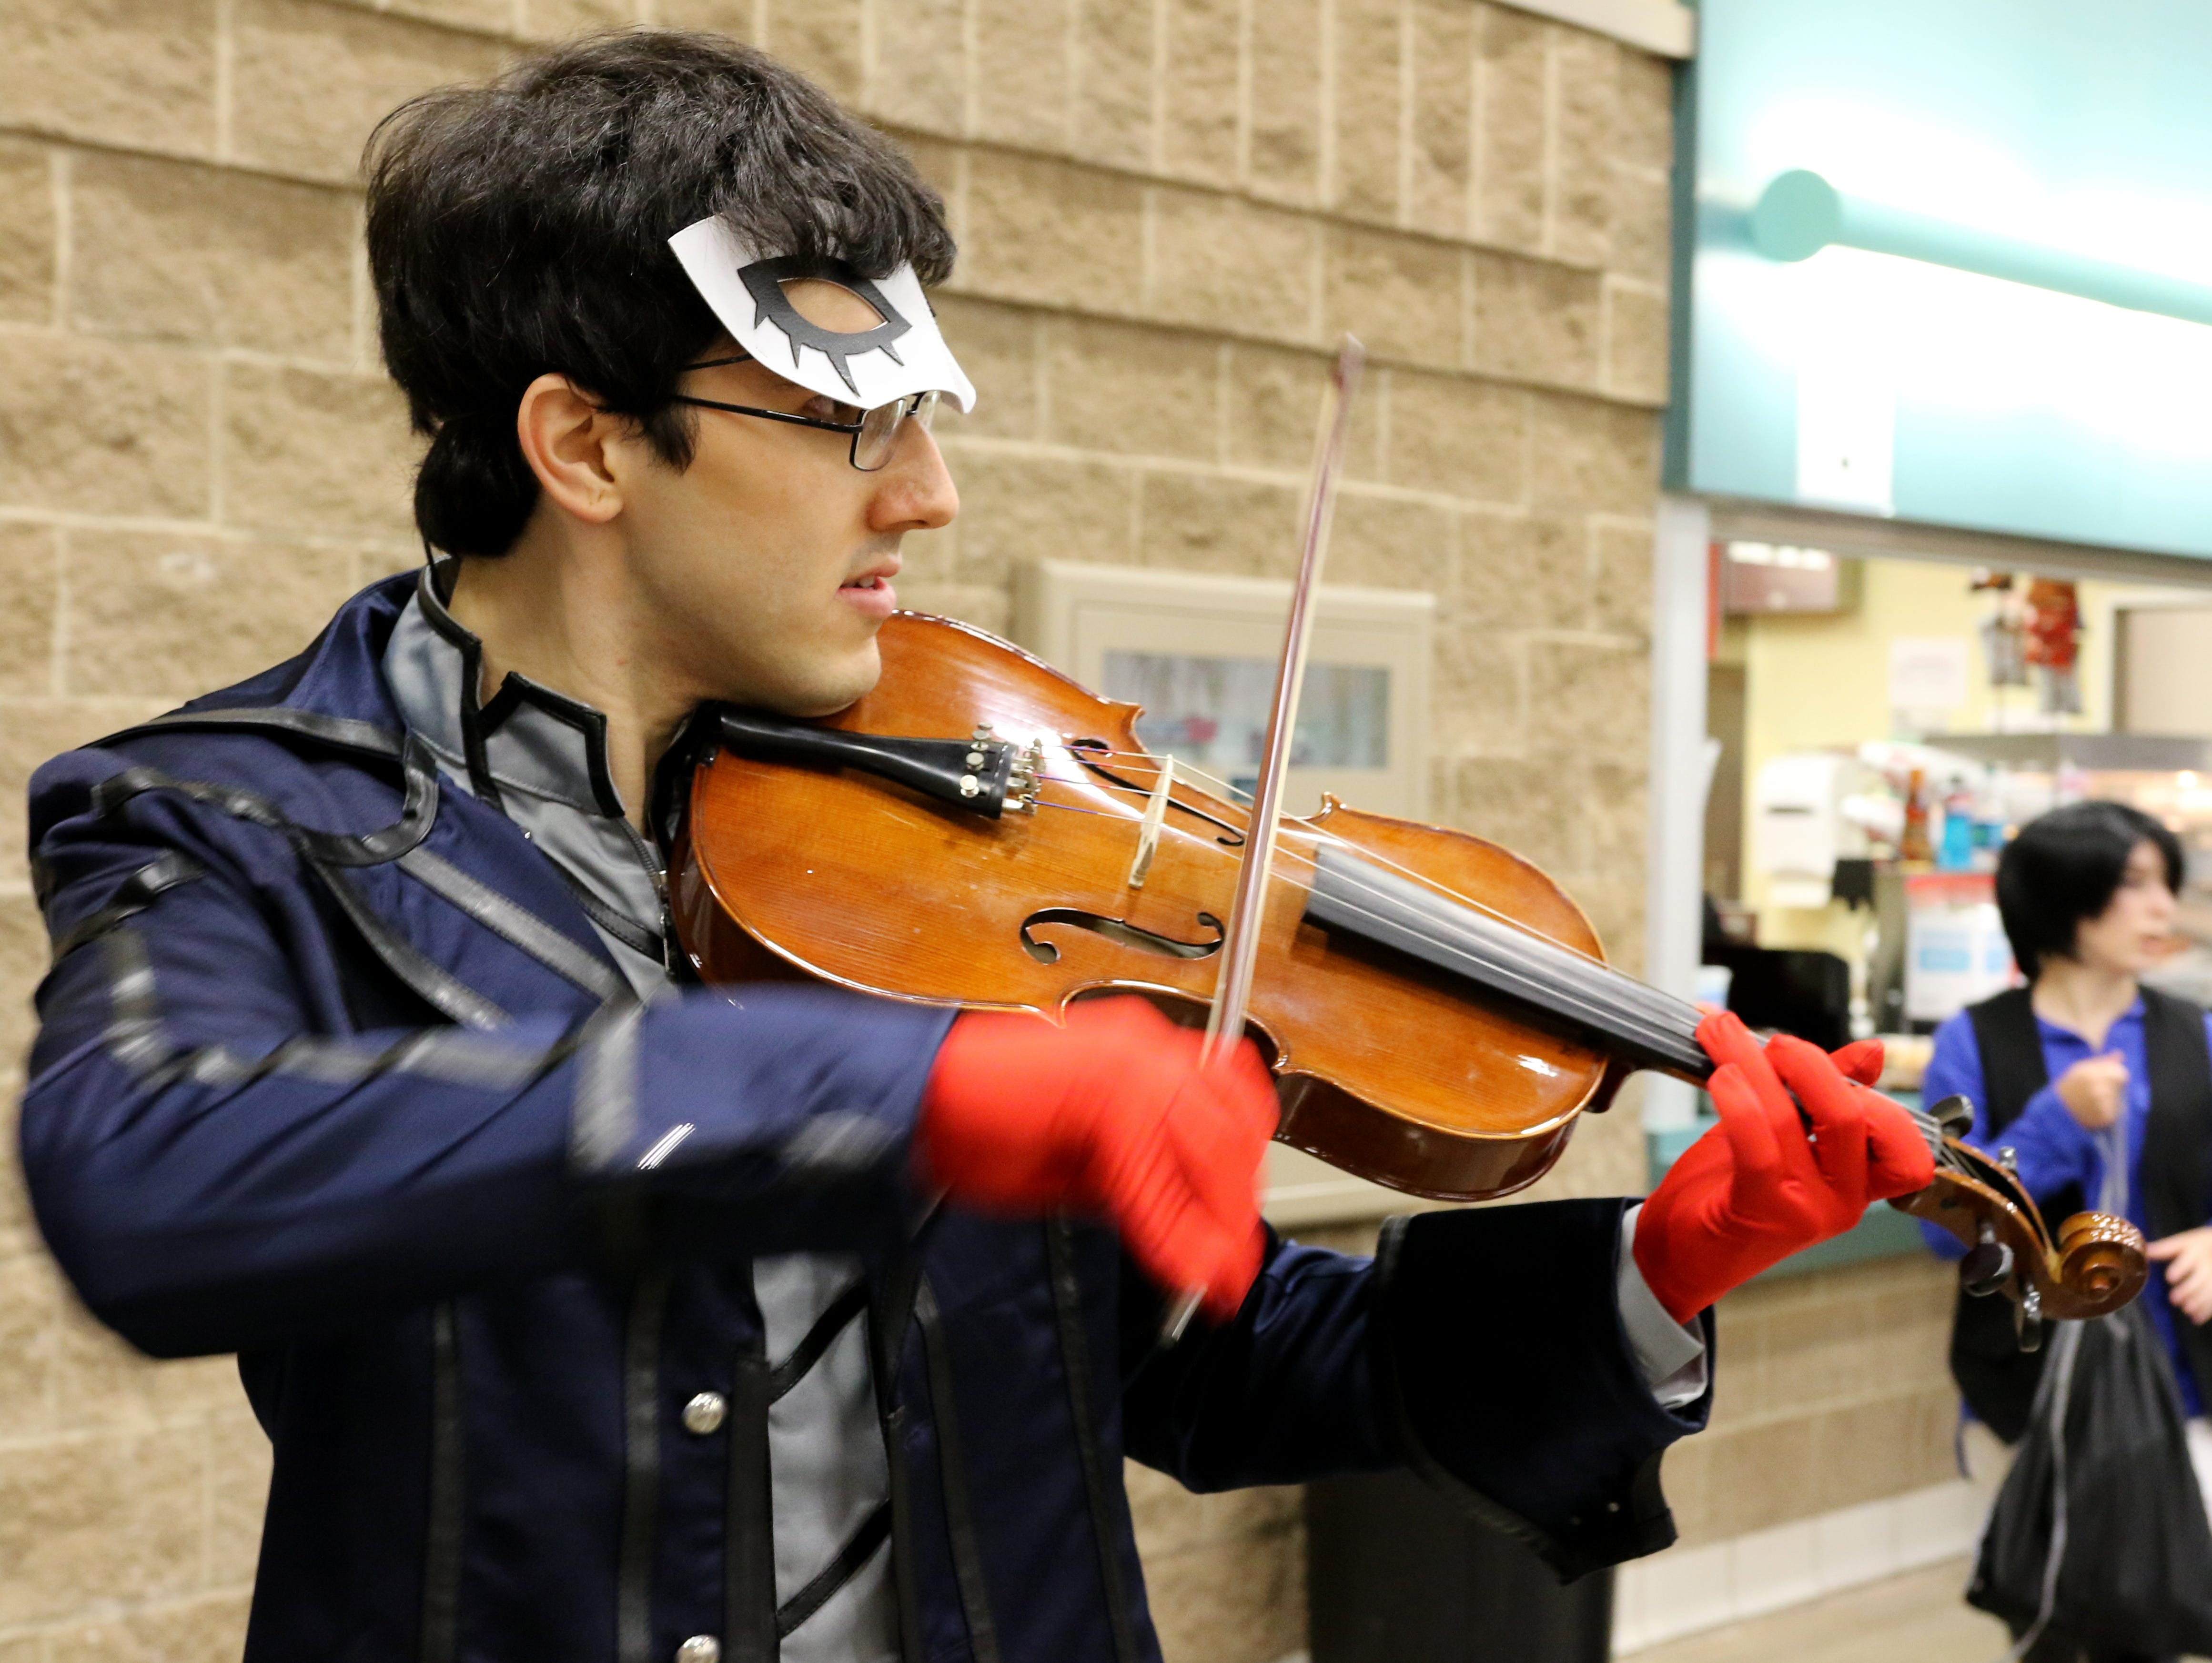 Julian Mendoza, cosplaying as Joker from Persona 5, plays his viola at Animania Saturday, July 28, 2018, in the MPEC Ray Clymer Exhibit Hall.